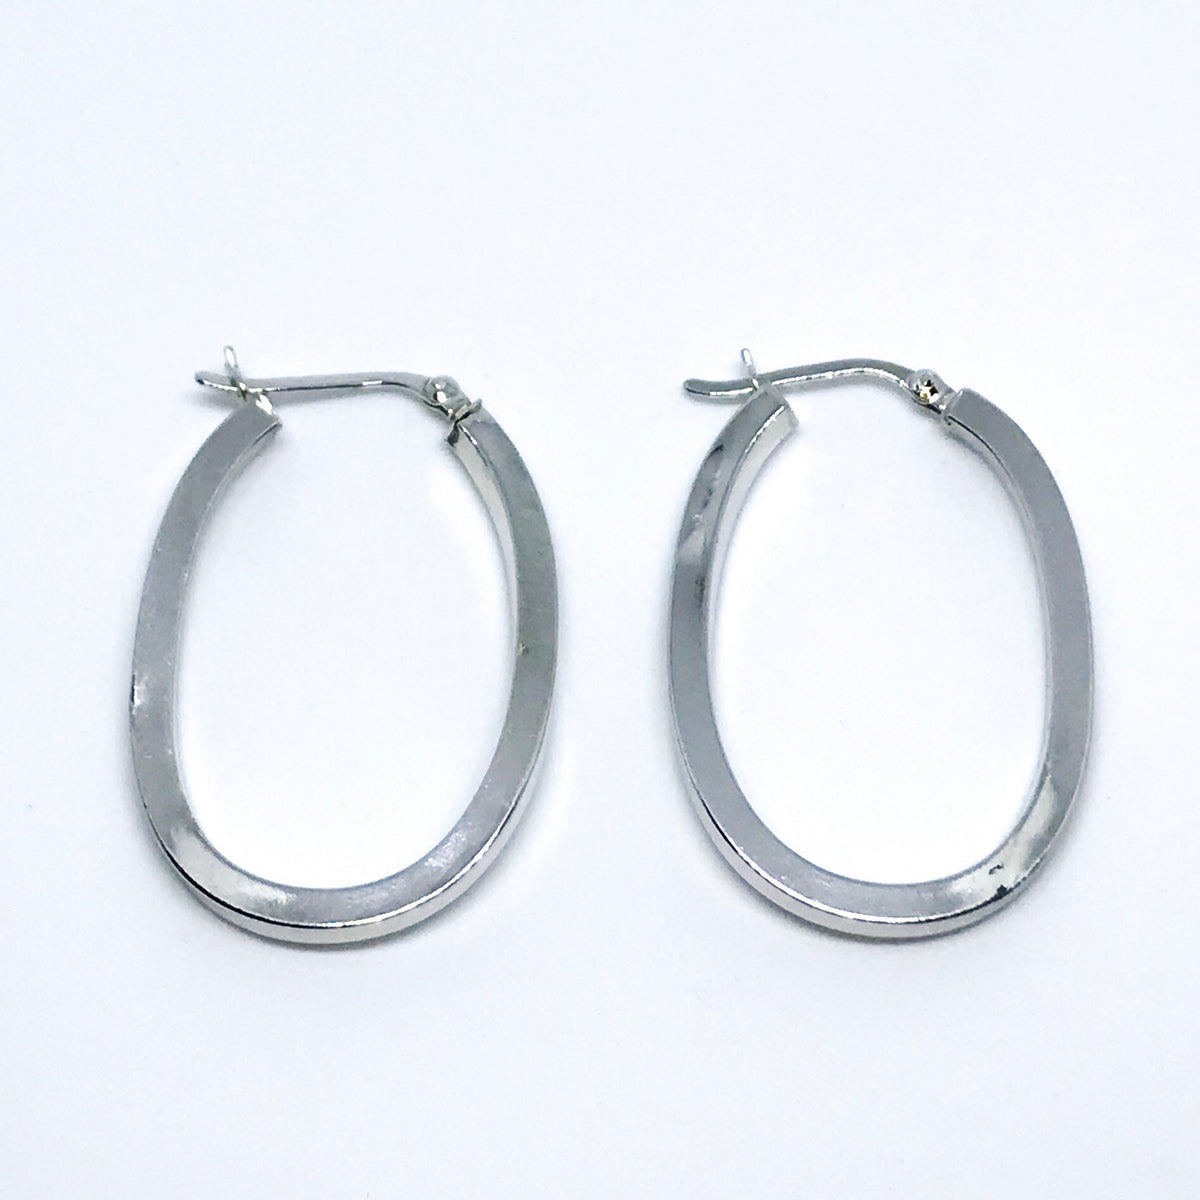 14k white gold on sterling silver hoops with no stone earrings - 3 Royal Dazzy